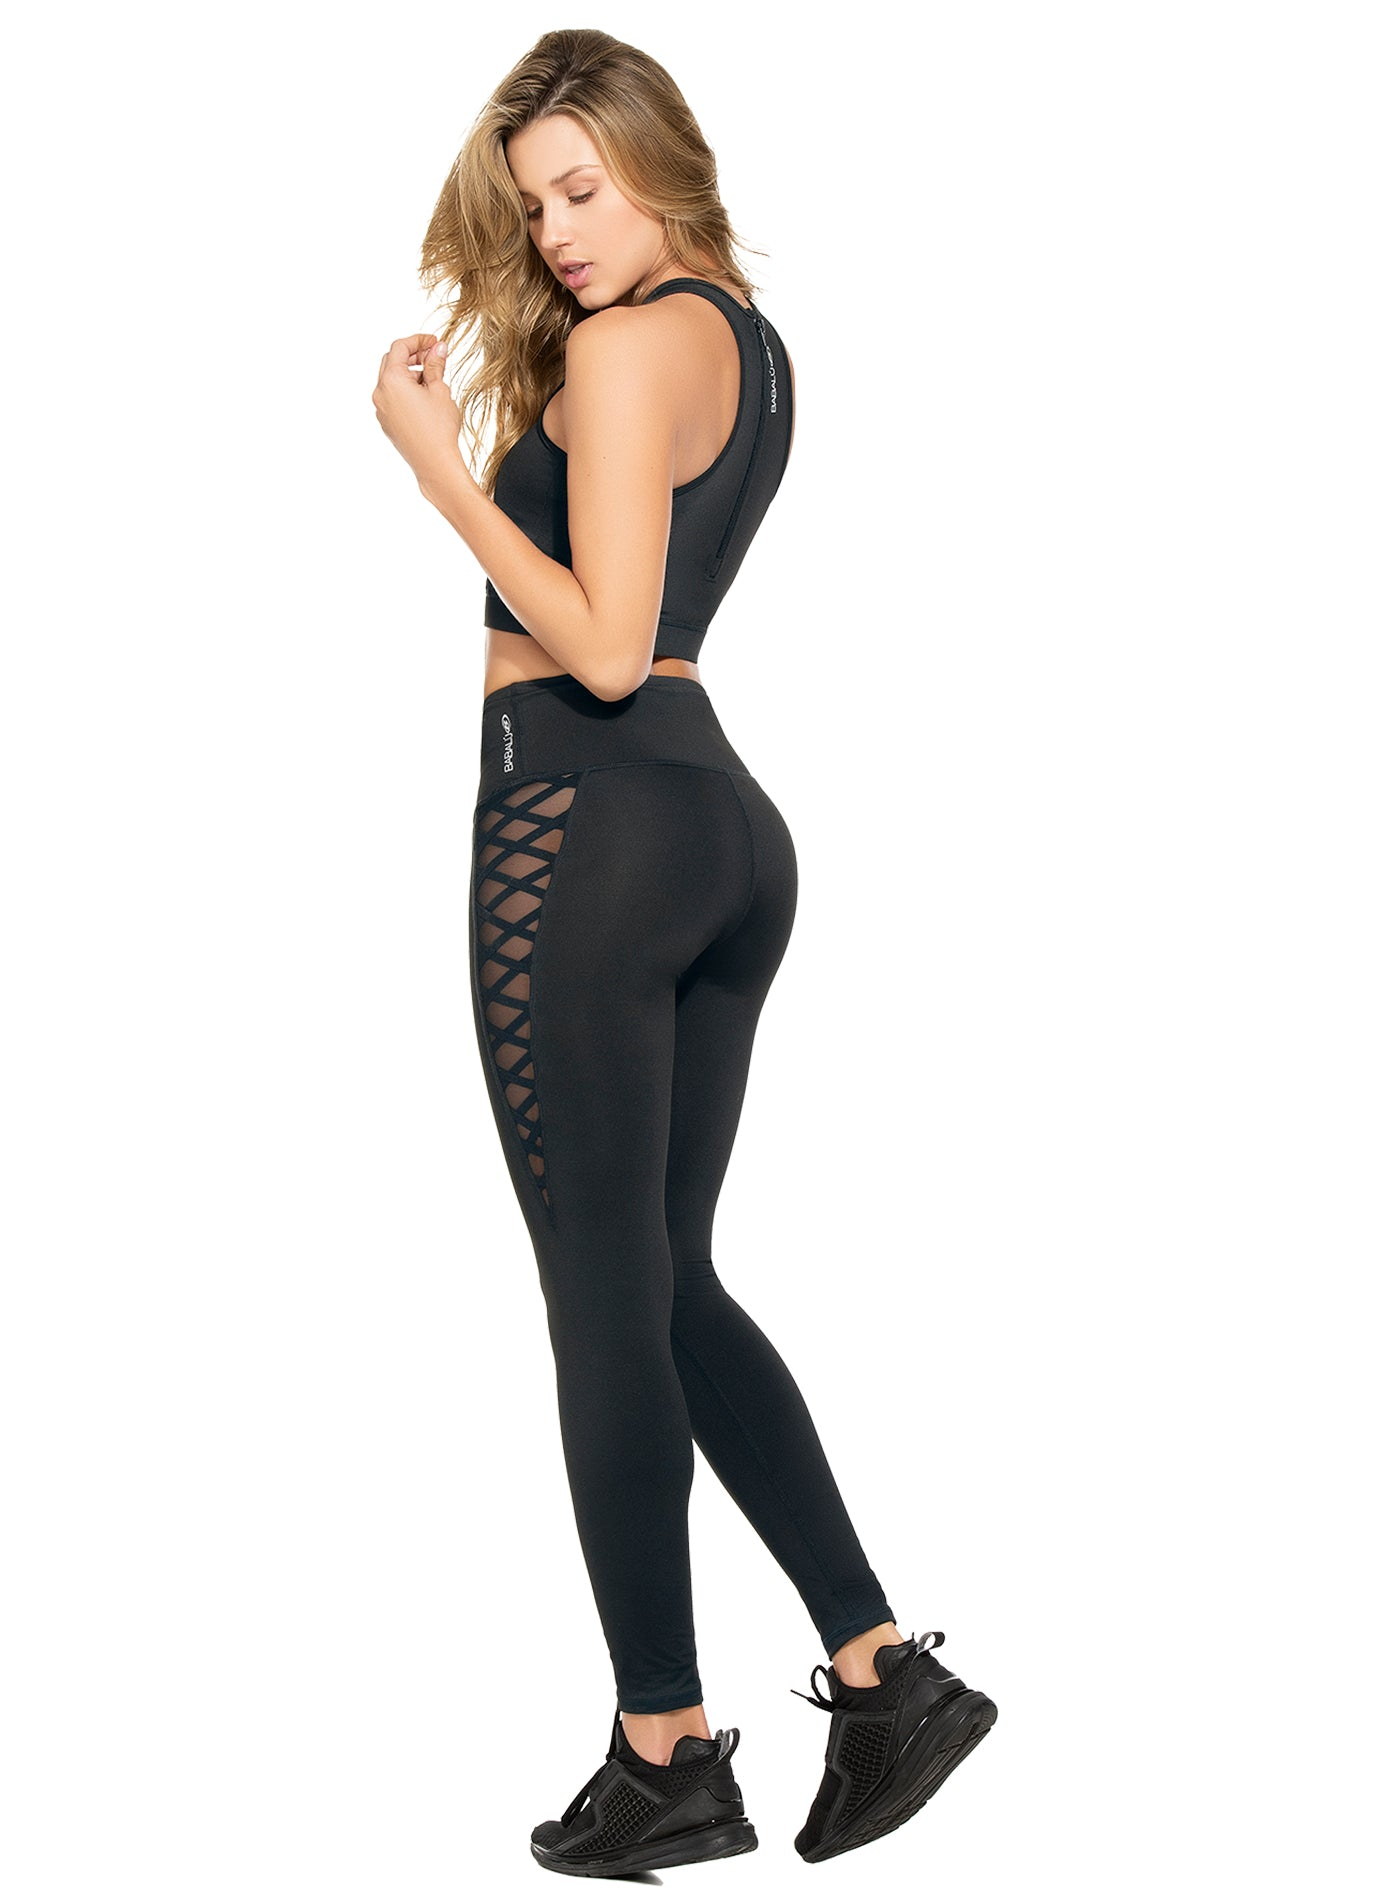 POLYESTER LEGGINGS ONE SIZE Ref. 80233